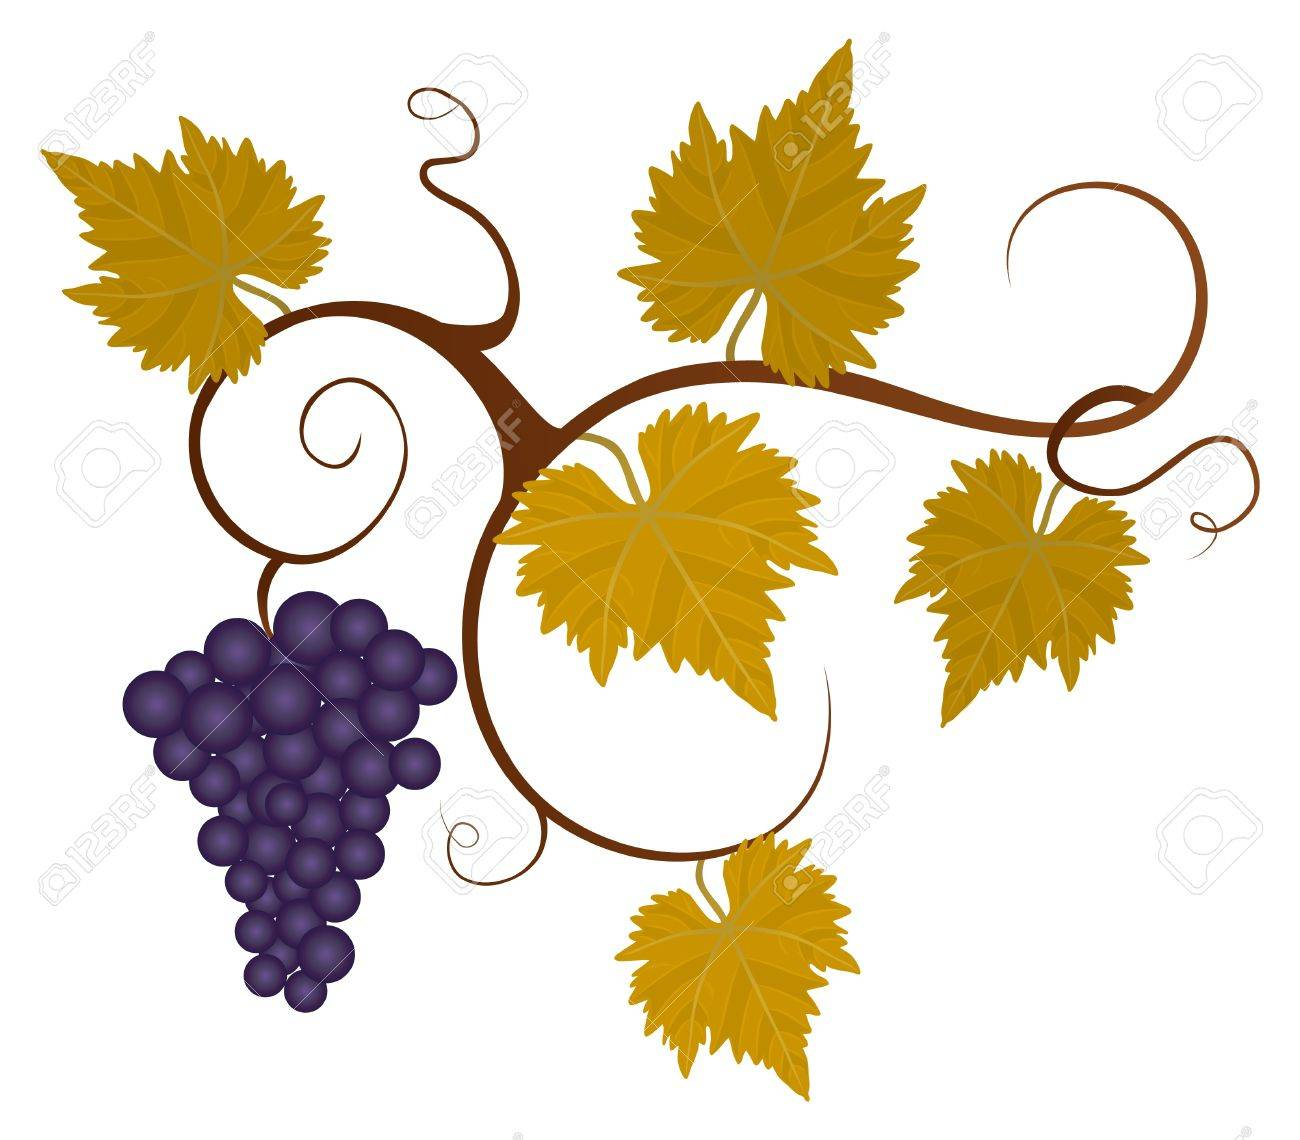 Grape vine isolated on the white background. Stock Vector - 9429743